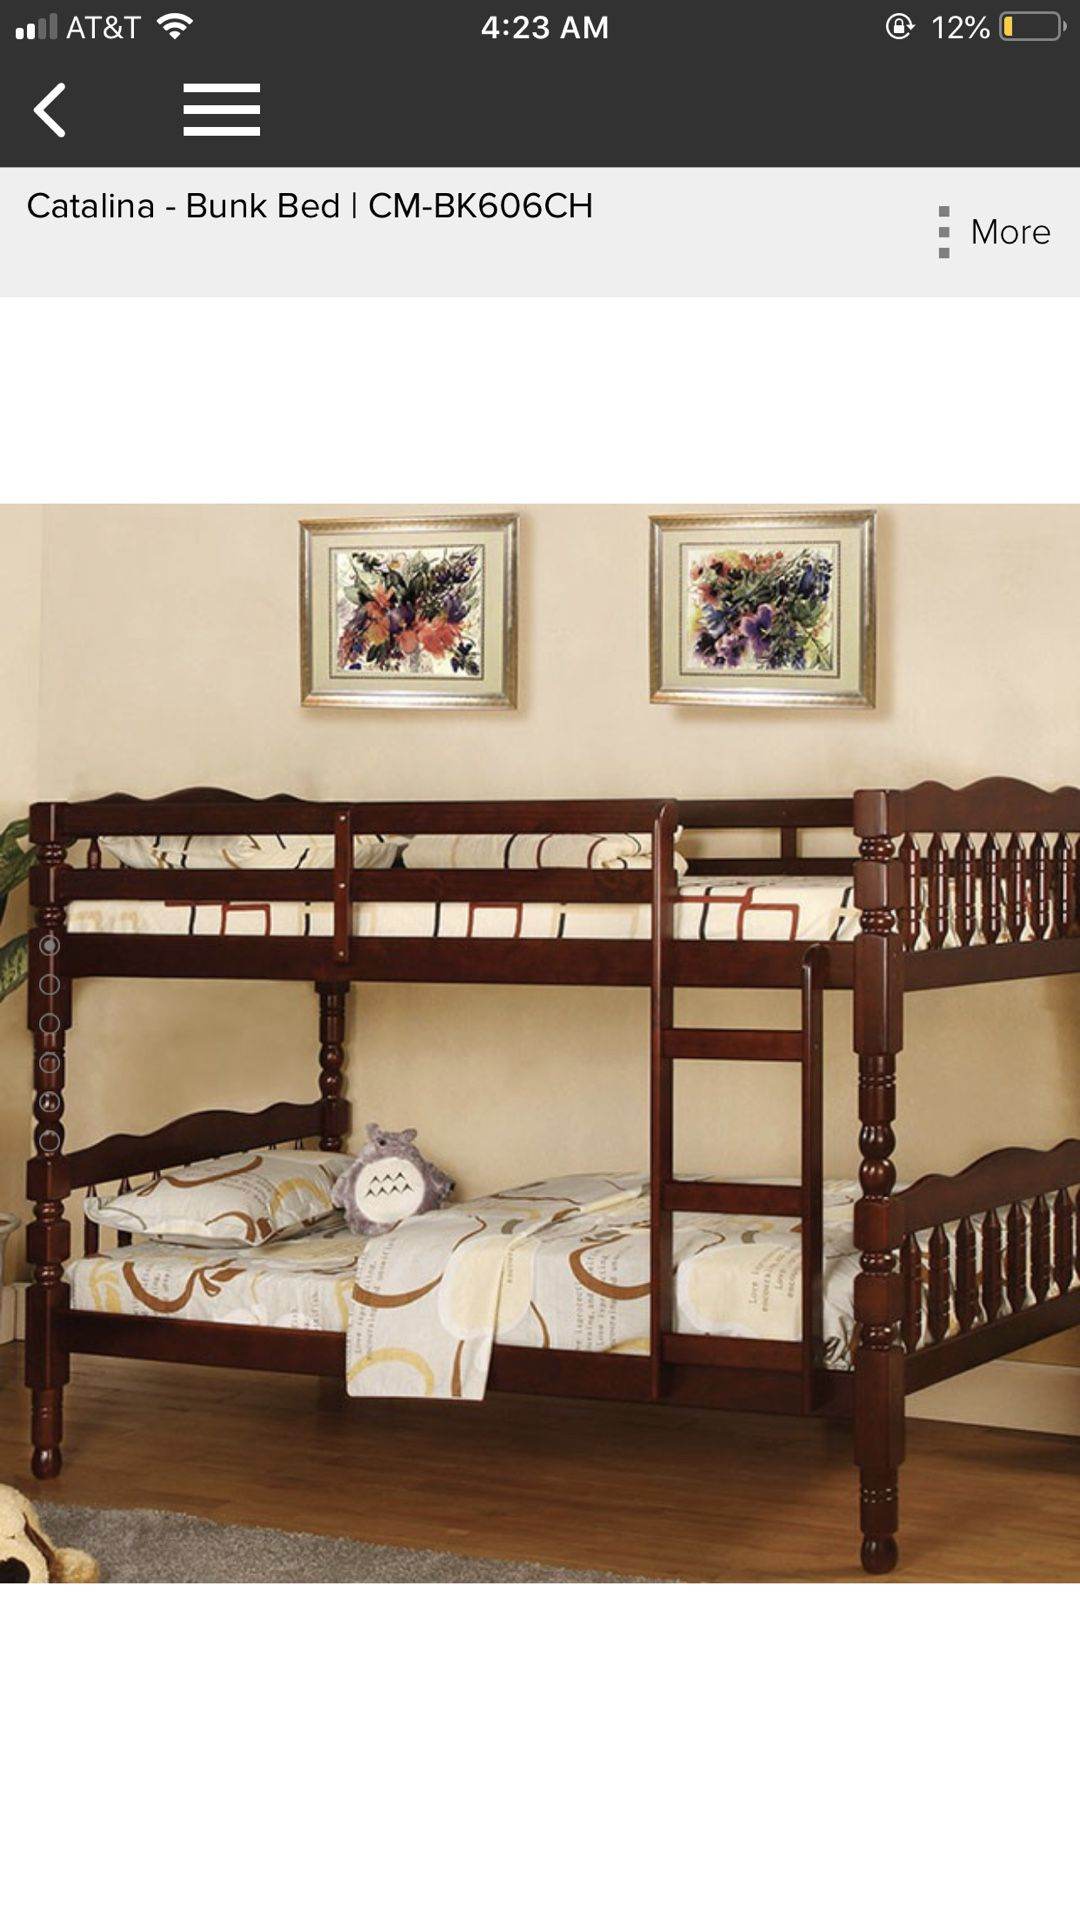 Bunk bed NEW twin/twin size